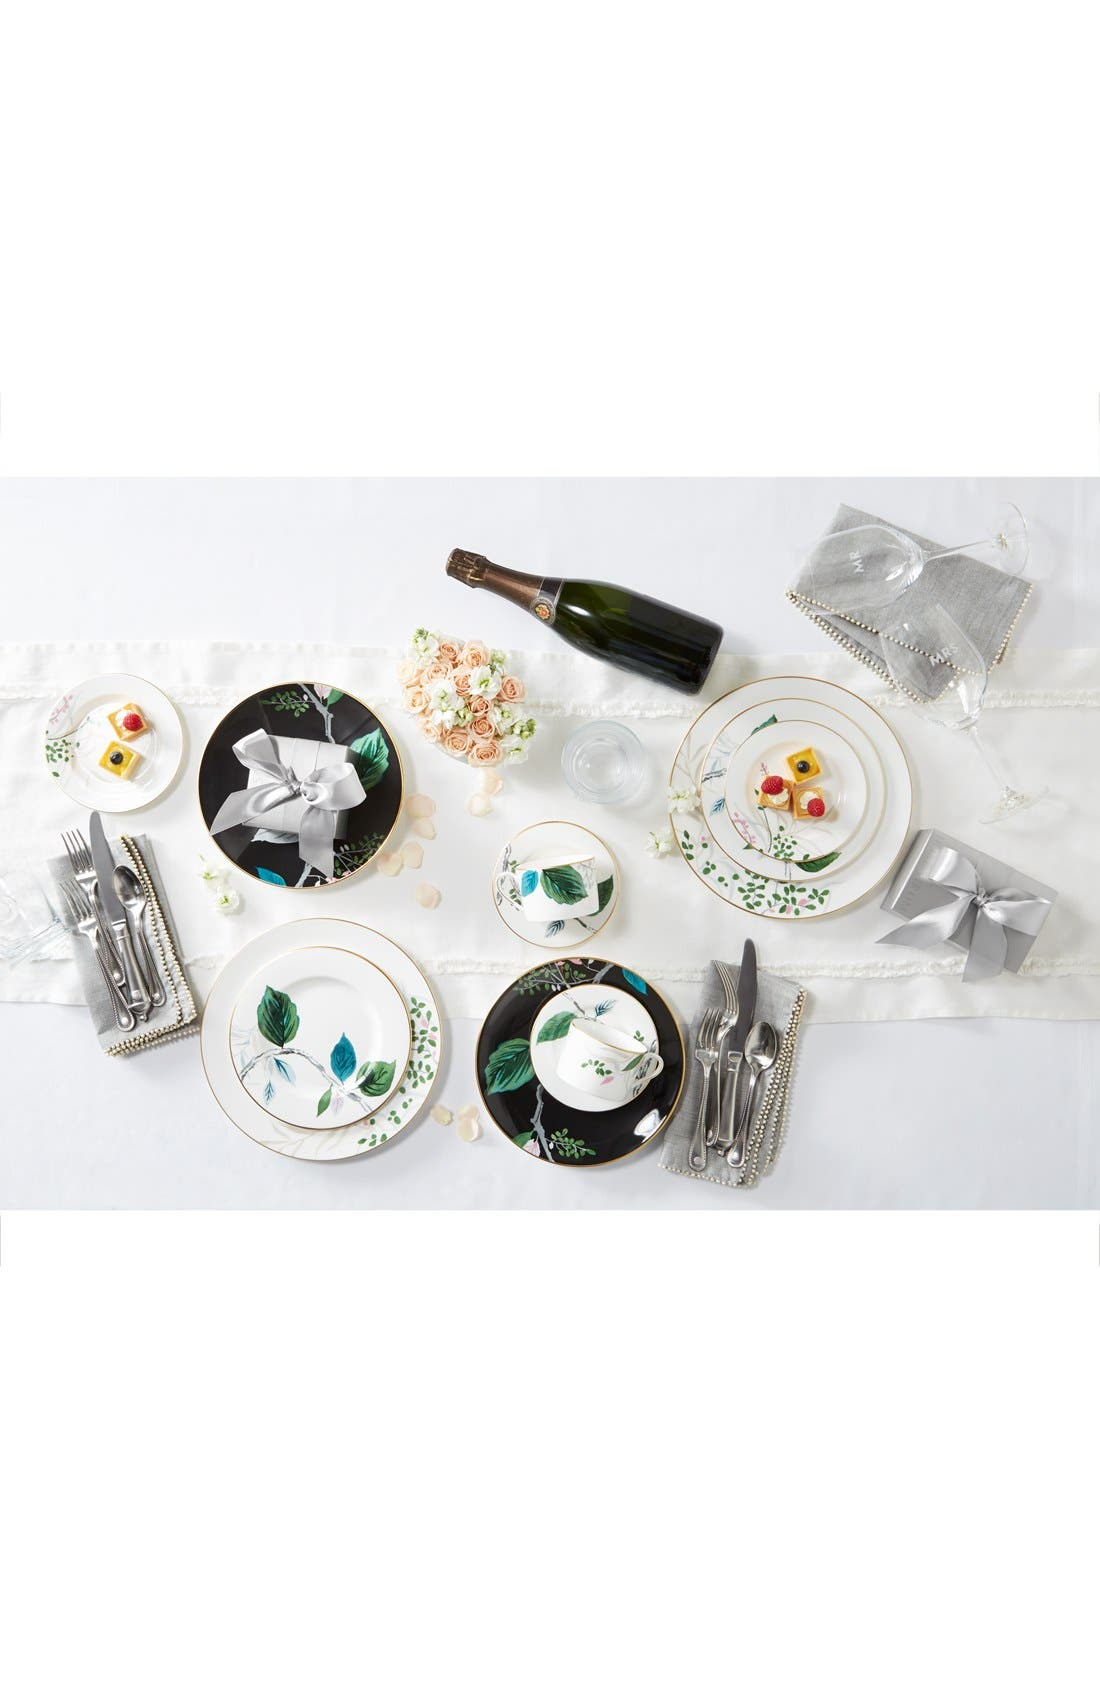 'Berry and Thread' 5-Piece Place Setting,                             Alternate thumbnail 3, color,                             BRIGHT SATIN